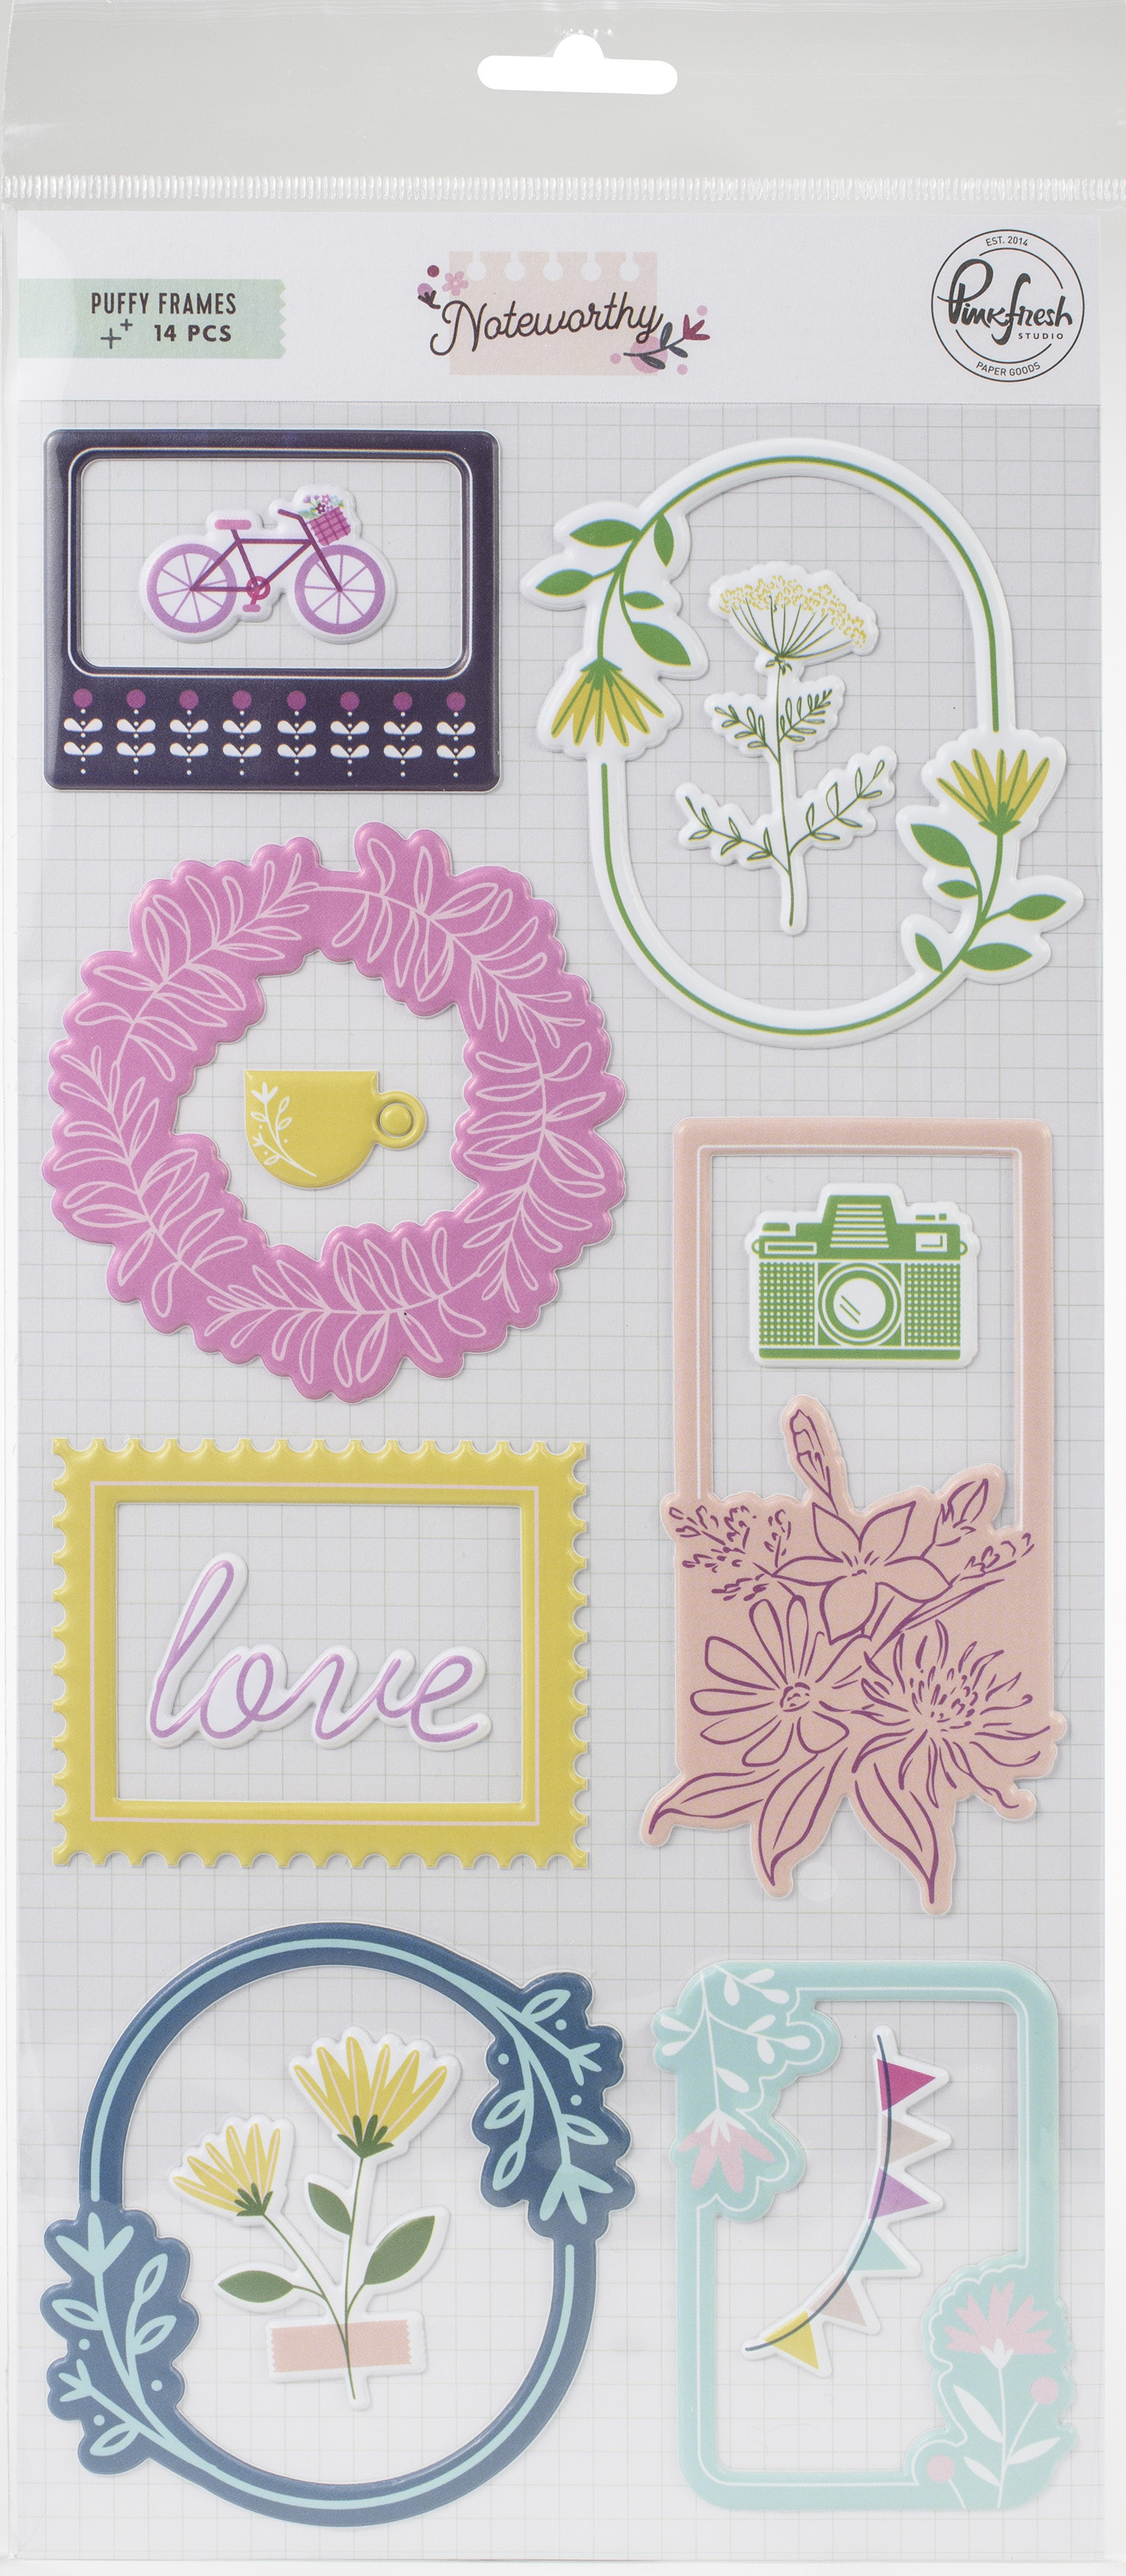 Noteworthy Puffy Frames Stickers